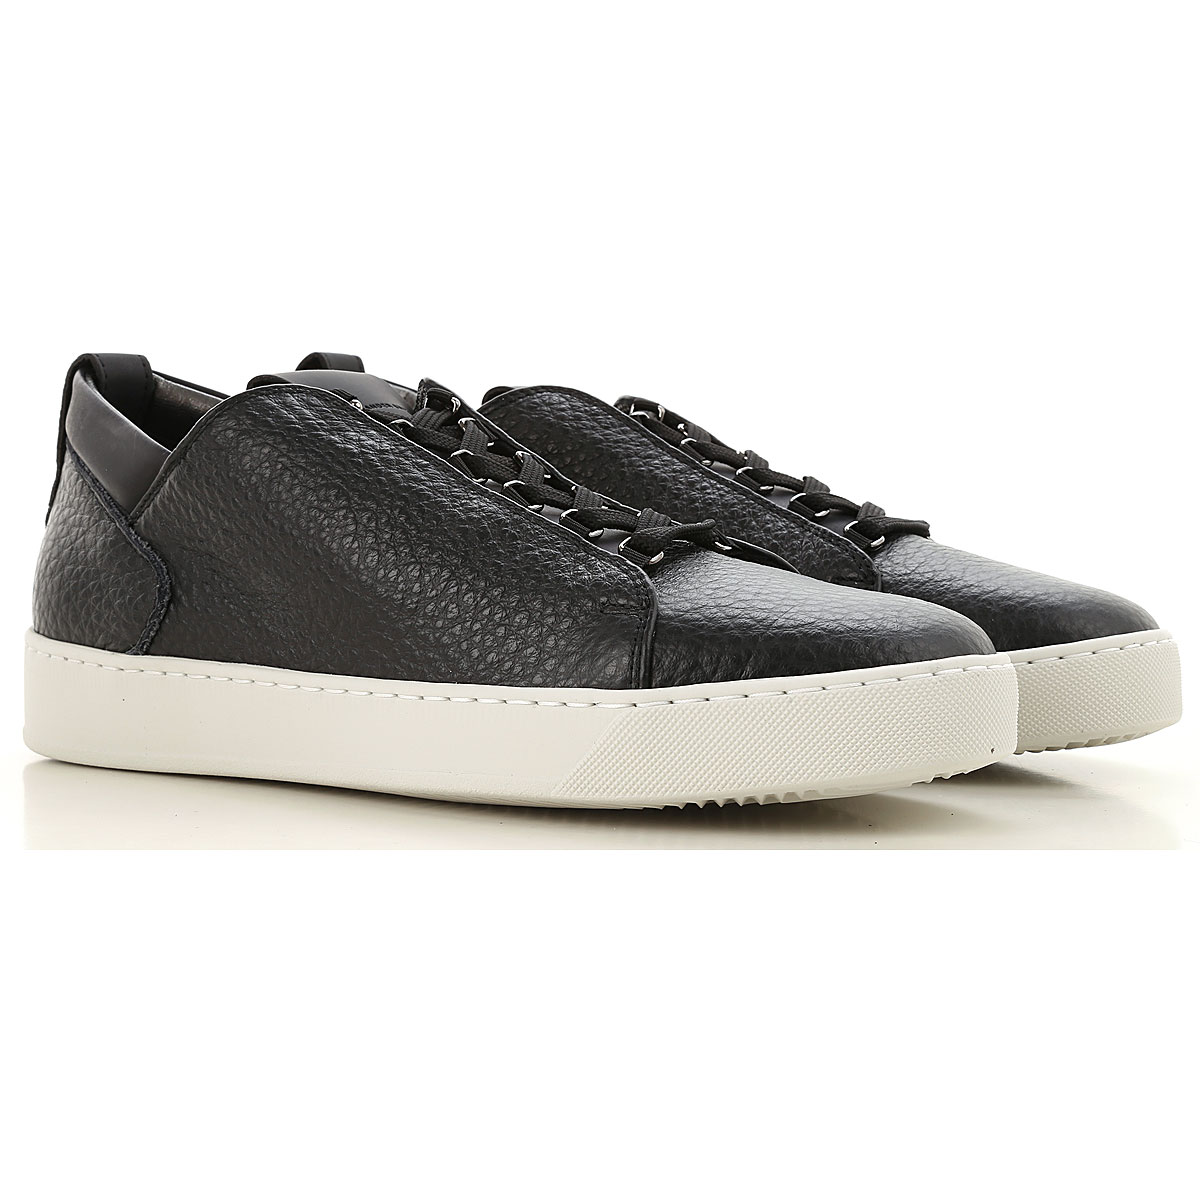 Image of Alexander Smith Sneakers for Men, Black, Leather, 2017, 11 7 8 9